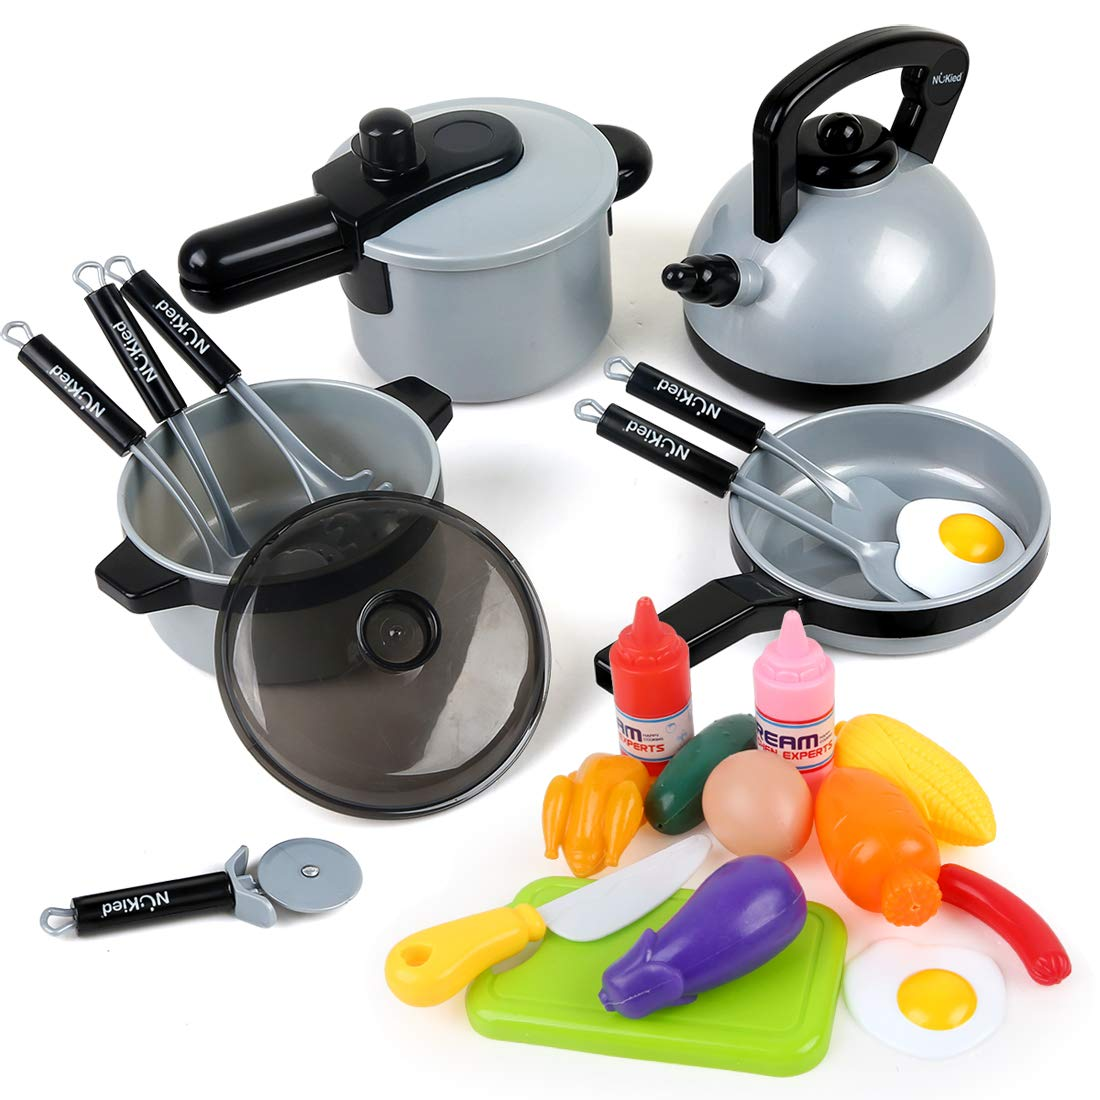 22 Pcs Kitchen Pretend Play Toys for Kids Toddlers, Cookware Set Toys with Pots Pans Foods for Girls Boys, Cooking Playset Toys for 2 3 4 5 6 7 Years Old, Kitchen Playset Accessories with Plastic Food